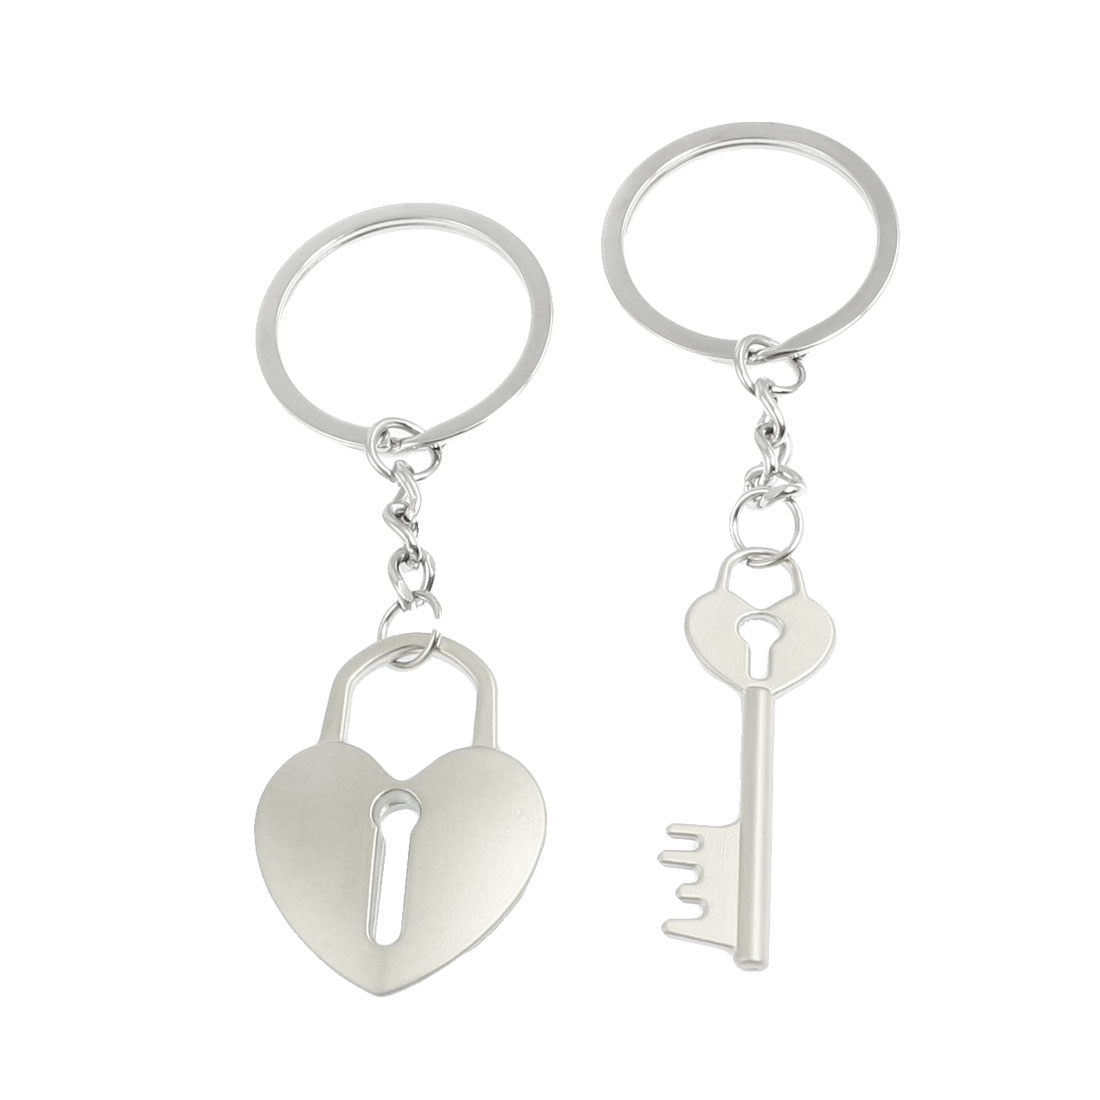 Lovers Heart Shaped Key Pendants Couple Keyring Keychain Silver Tone Pair